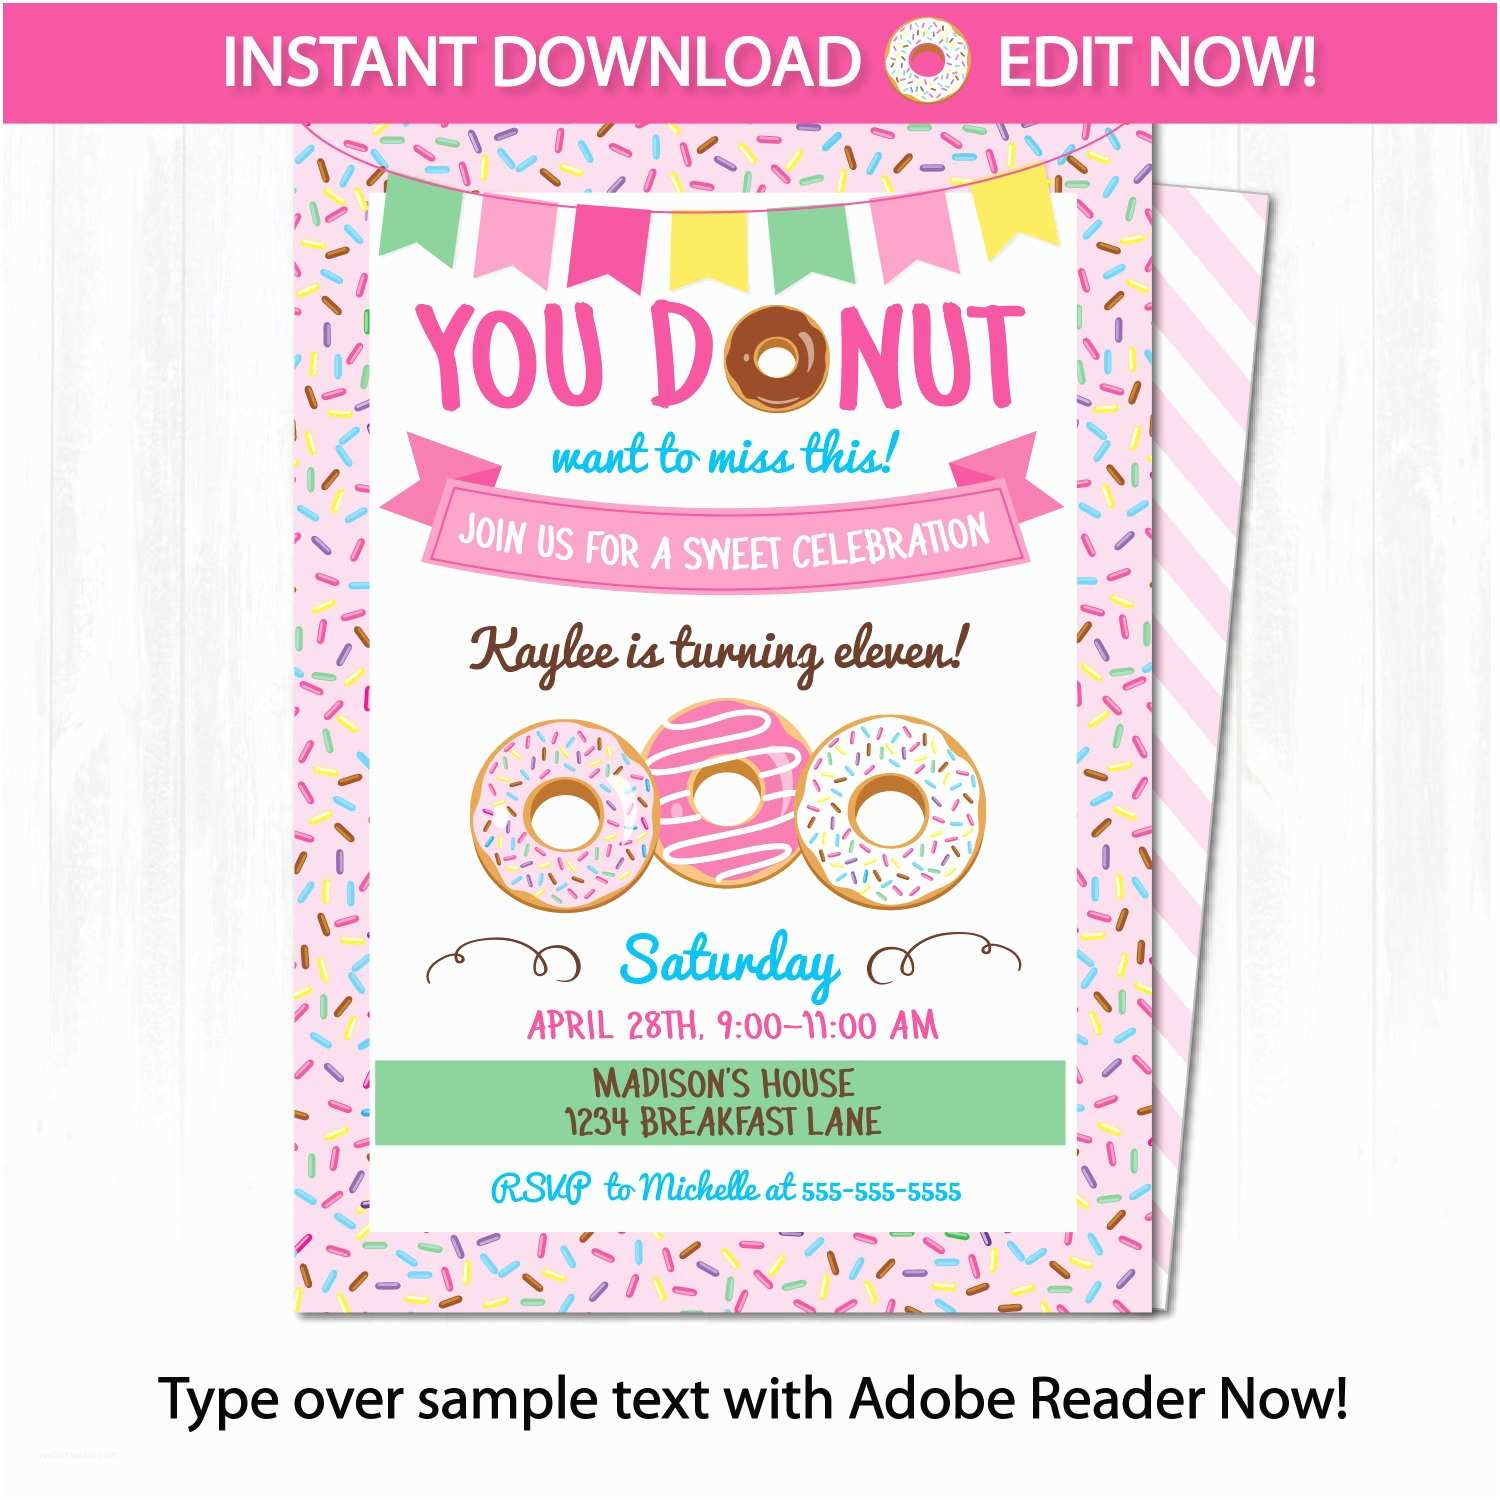 Donut Party Invitations Donut Party Invitations Donut themed Party by Arcticparty